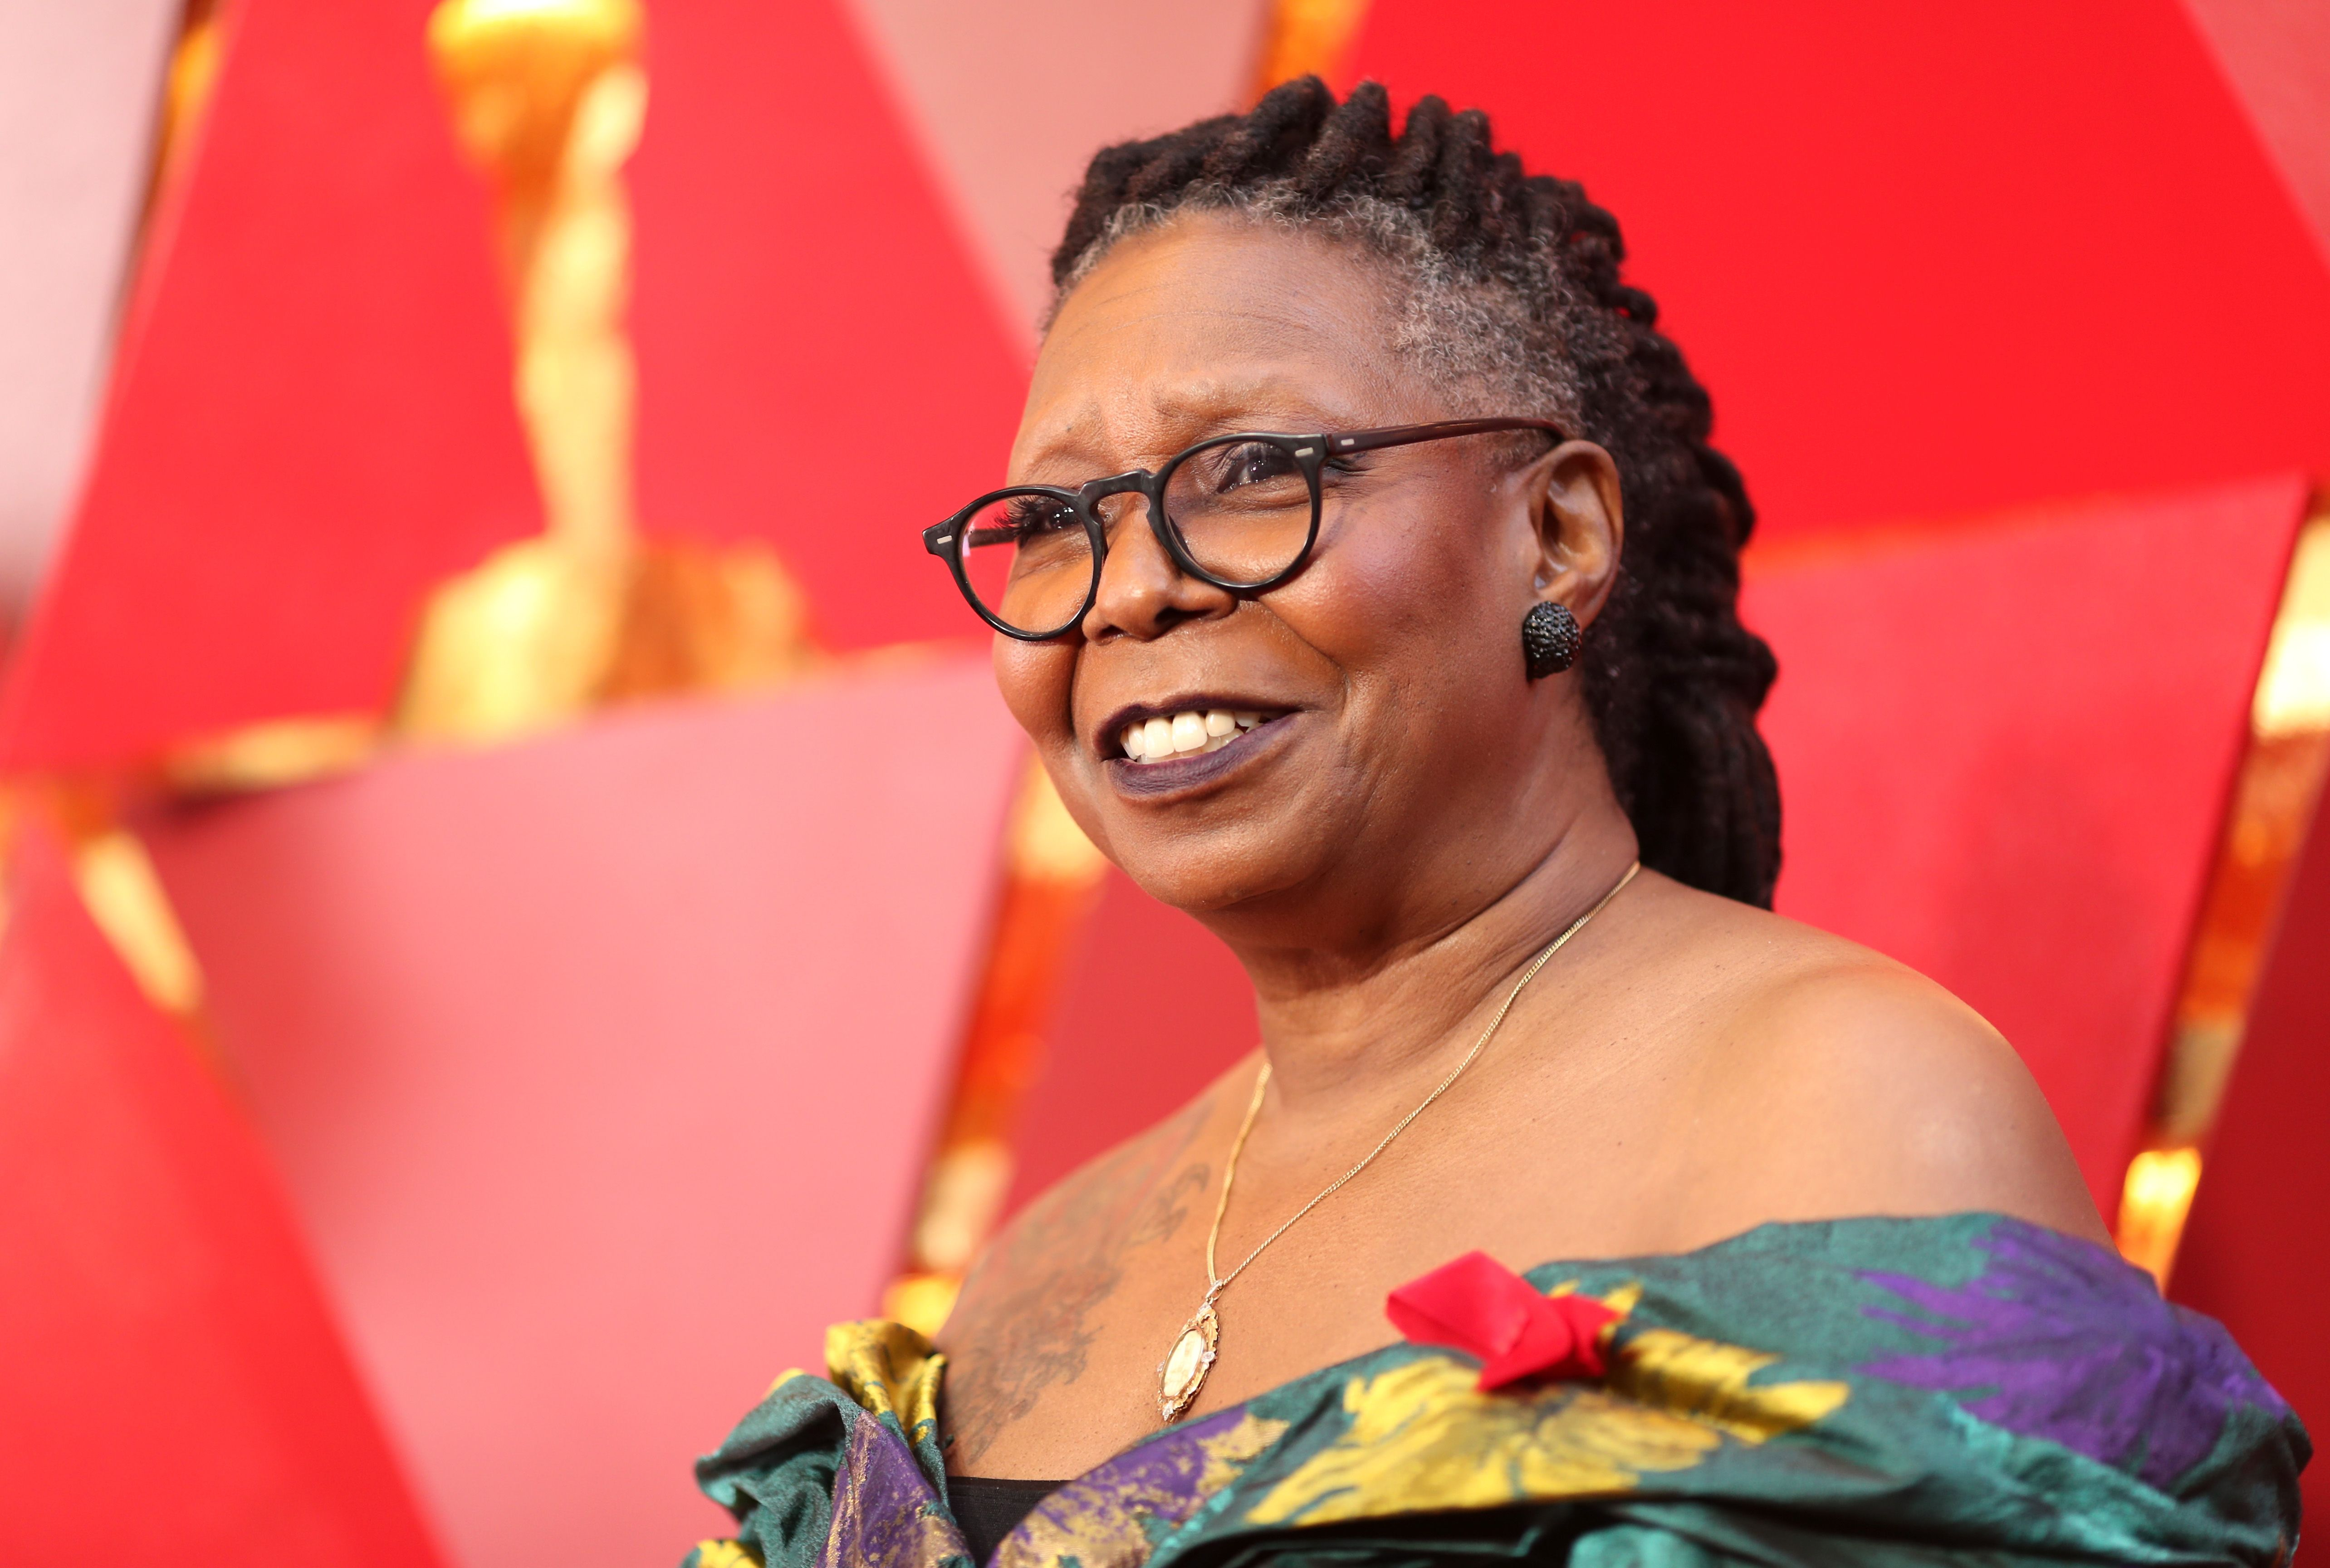 Whoopi Goldberg at the 90th Annual Academy Awards at Hollywood & Highland Center on March 4, 2018   Photo: Getty Images